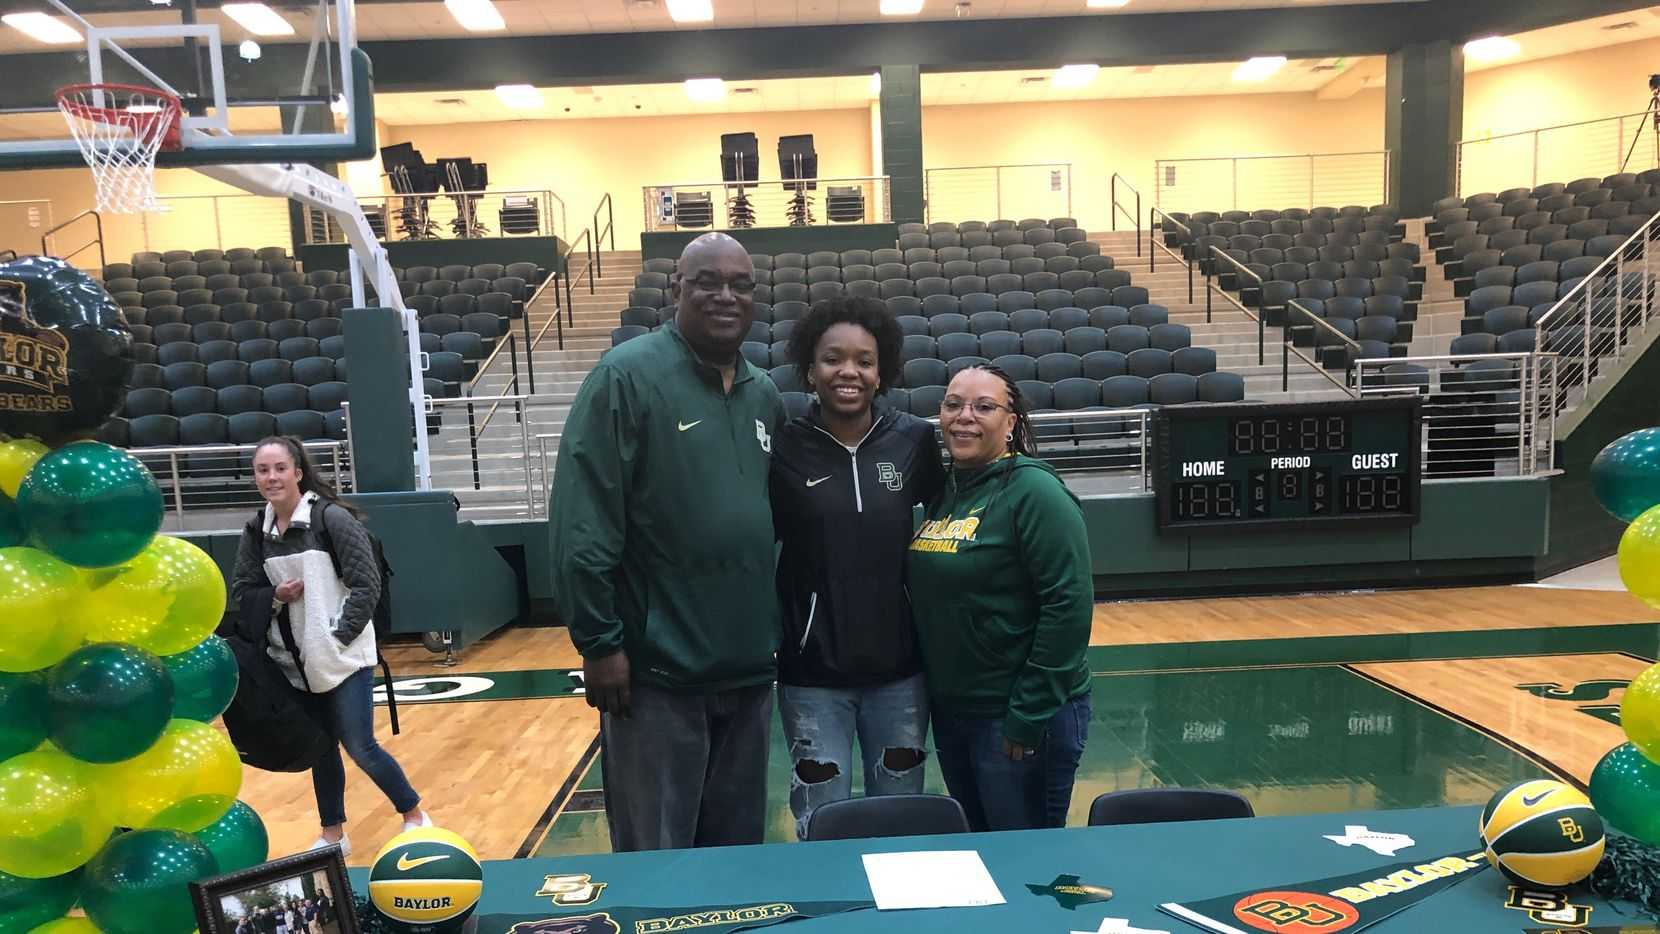 Prosper's Jordyn Oliver signed to play basketball with Baylor on Nov. 14, 2018. Jordyn (middle) is seen here with her father, Dwayne and her mother Carmell. (Photo courtesy of Jordyn Oliver)